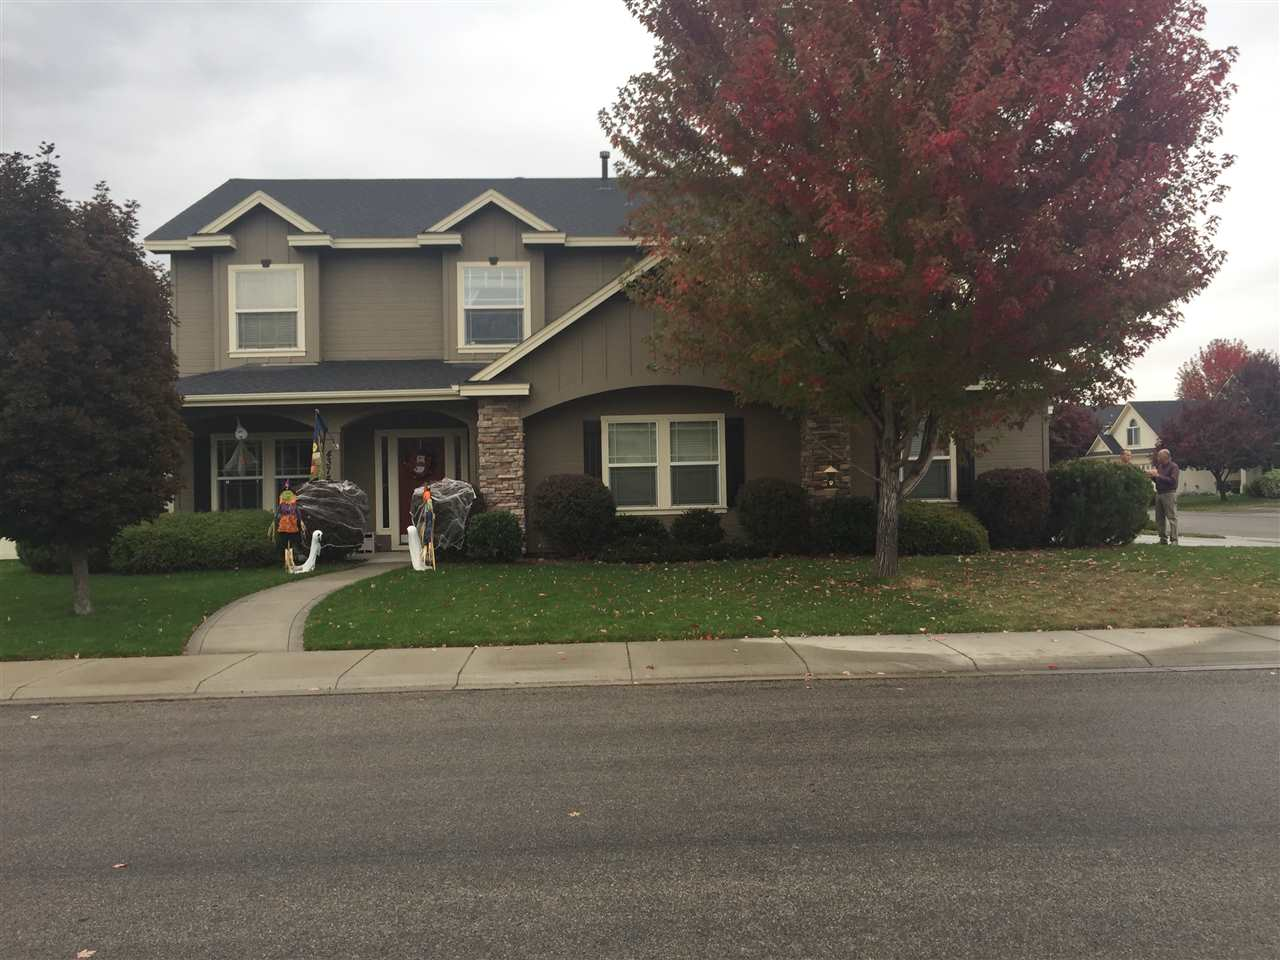 4374 N Clearbrook Ave, Meridian, ID 83646